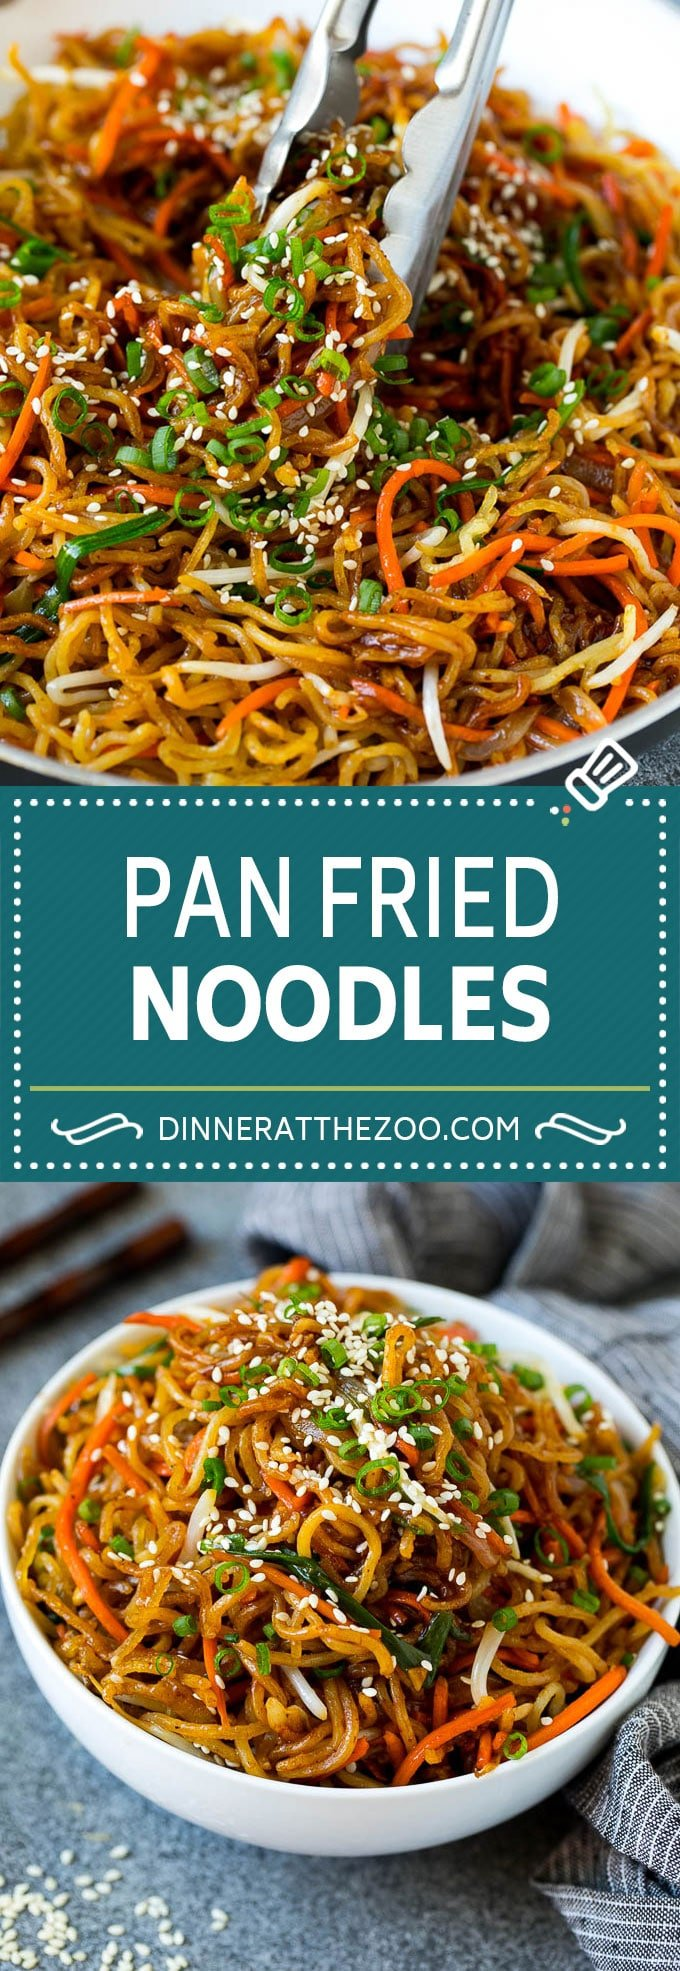 Pan Fried Noodles | Noodle Stir Fry #vegetarian #noodles #stirfry #veggies #dinner #dinneratthezoo